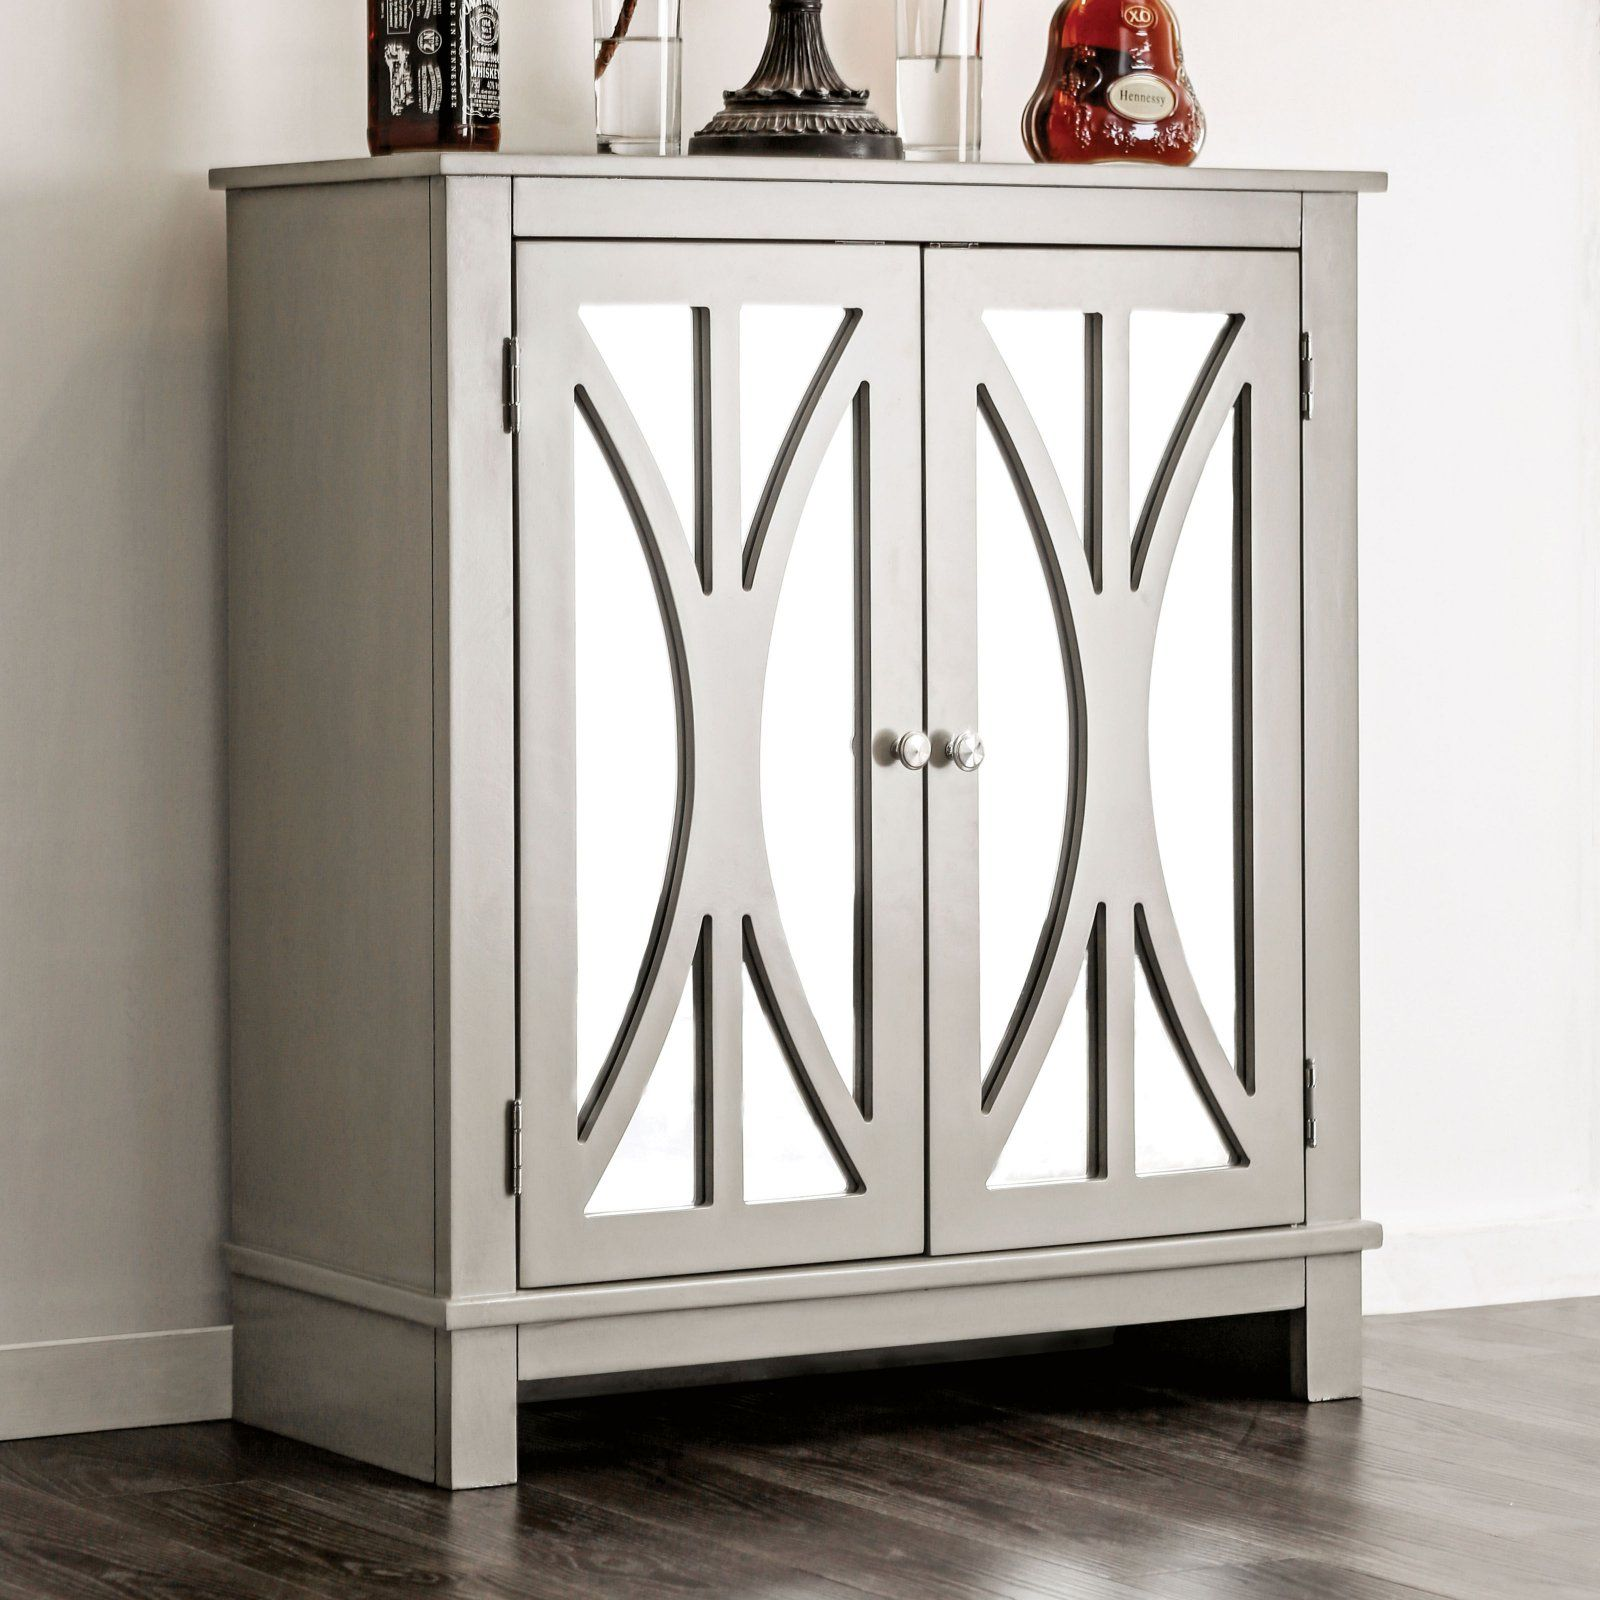 Furniture Of America Christophe Contemporary Style Double Door Hallway Cabinet